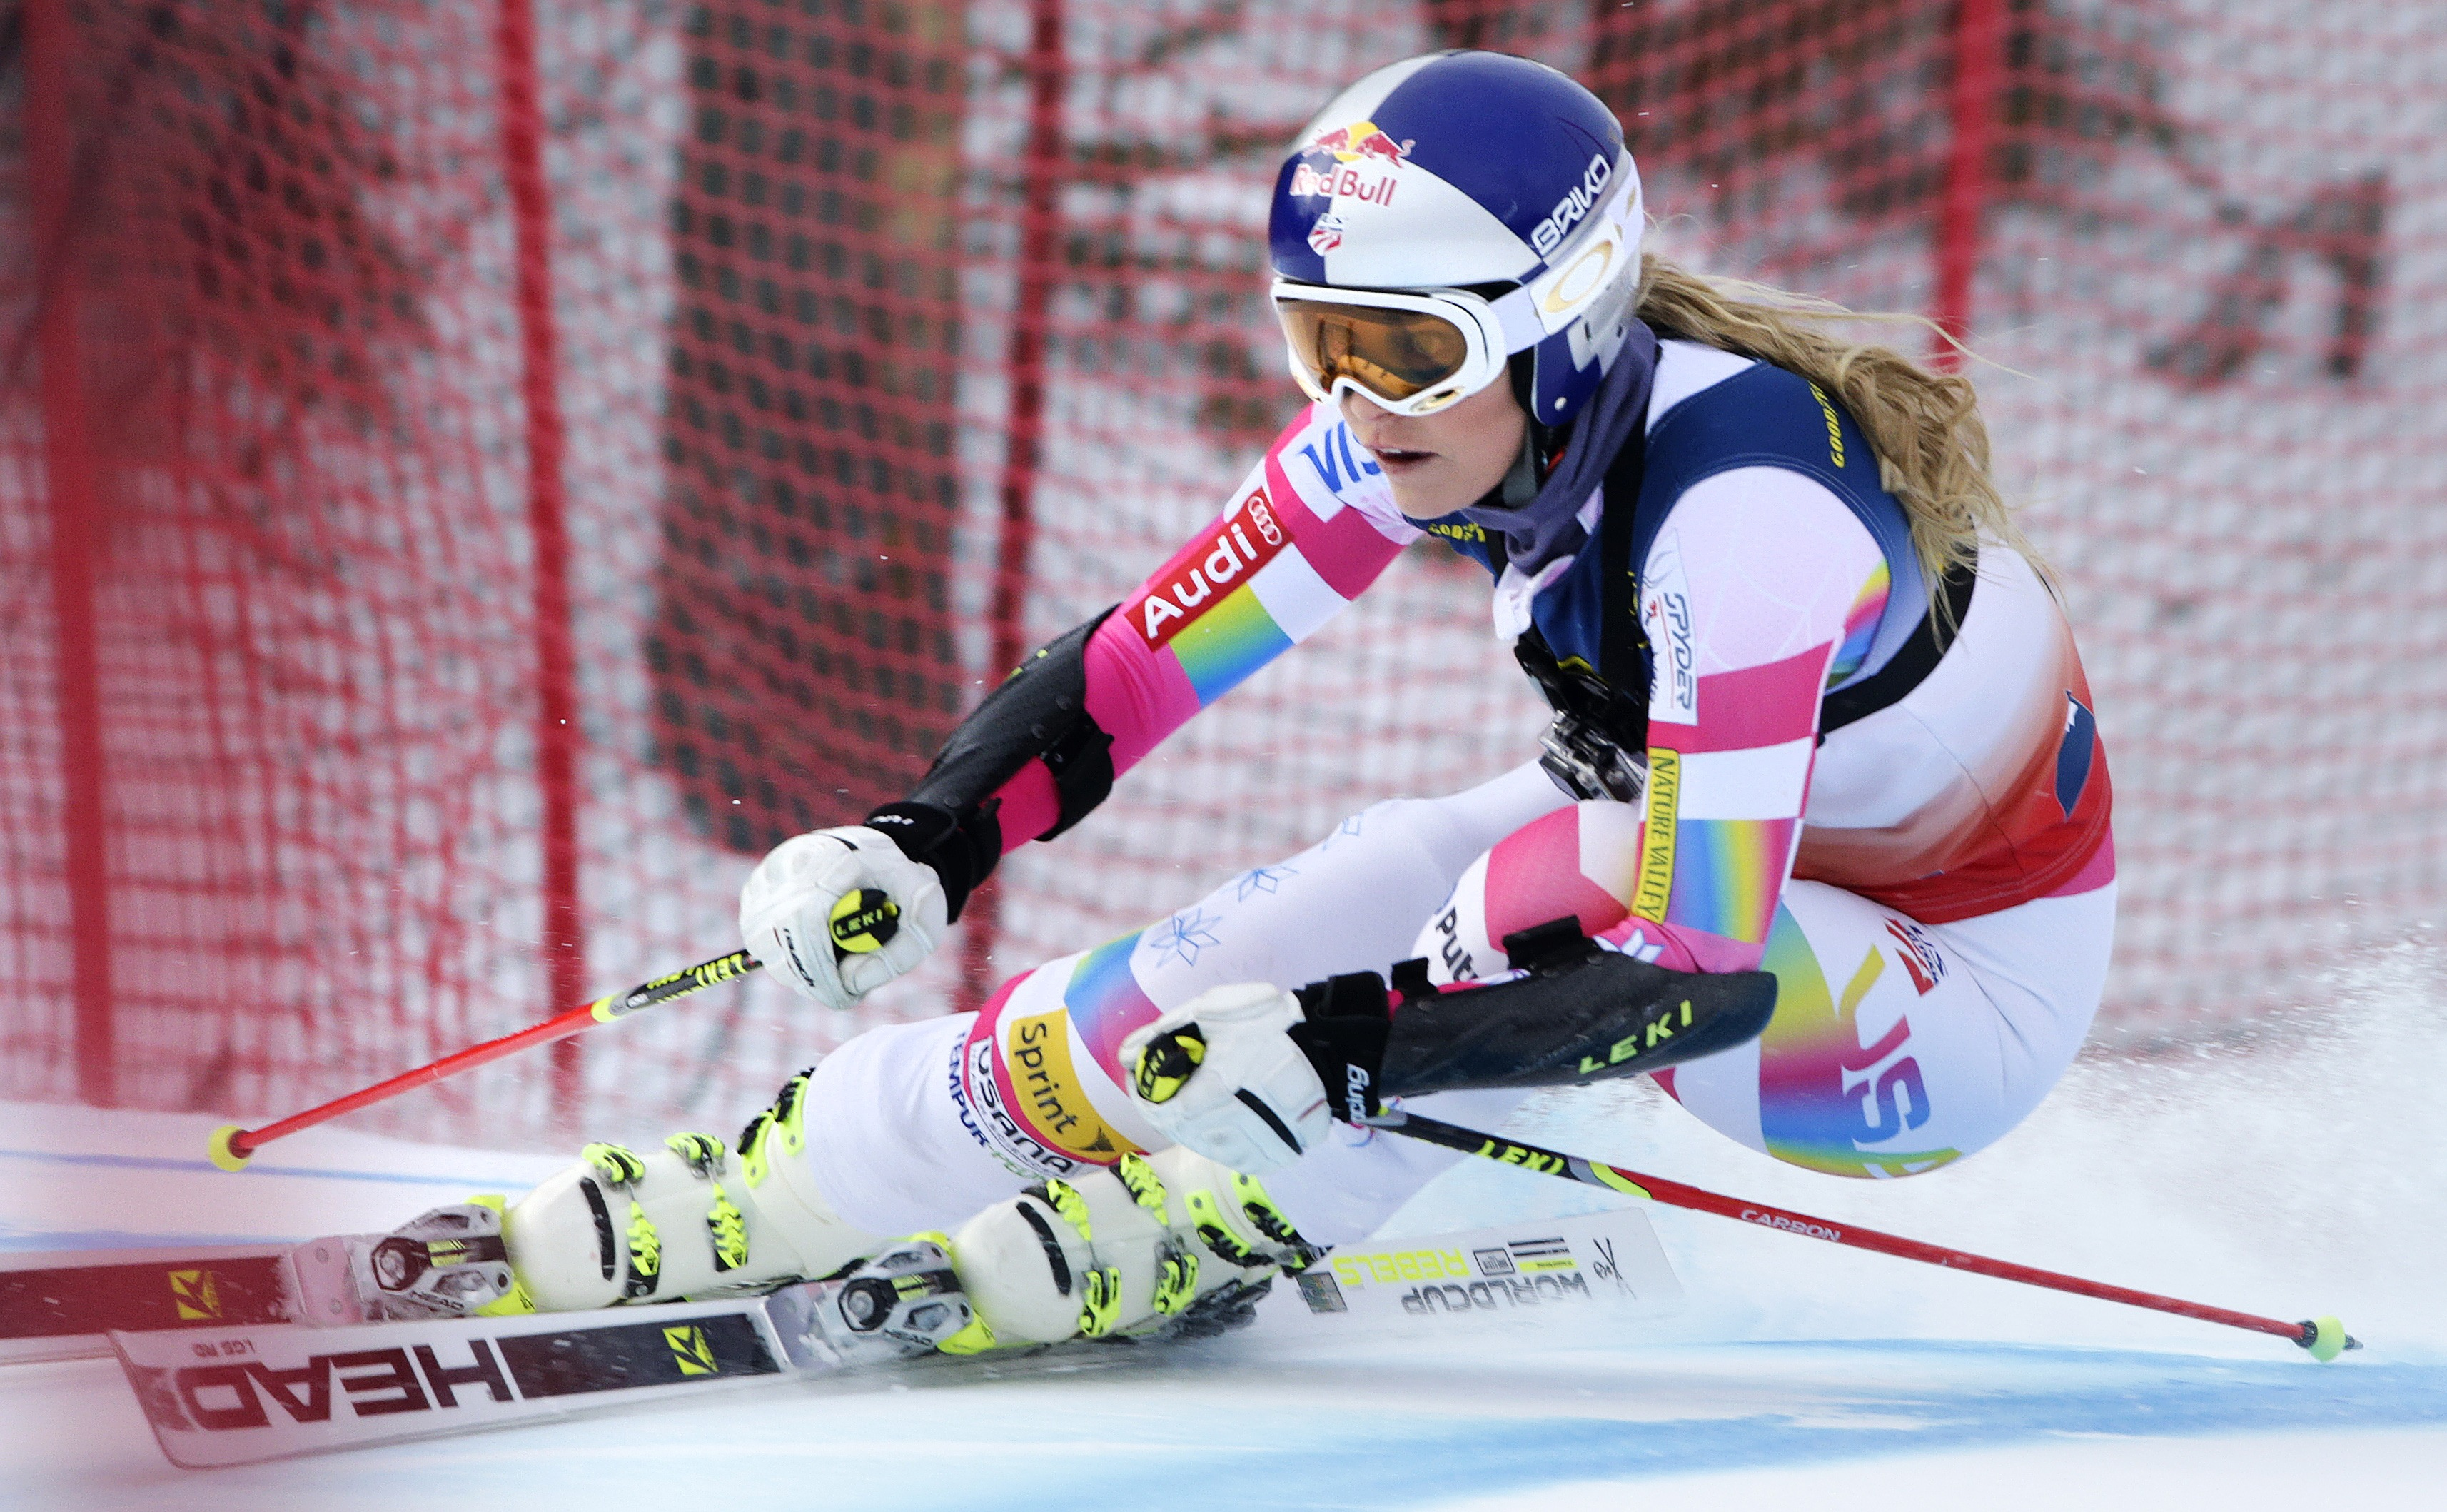 O'Brien wins giant slalom title at US Alpine Championships